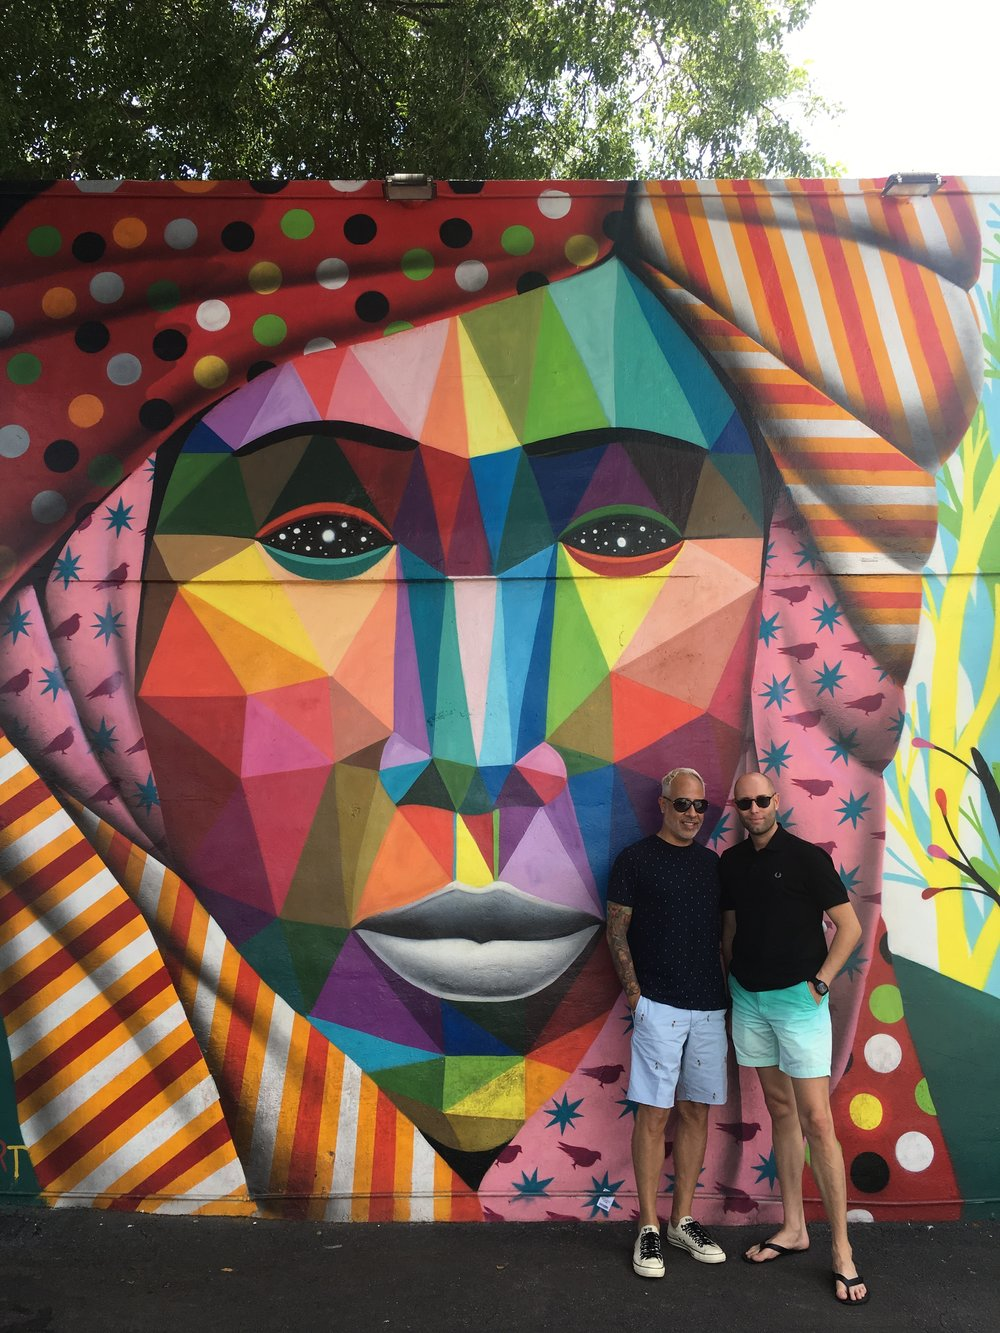 wynwood walls e. vincent martinez alex page #thepageofalex